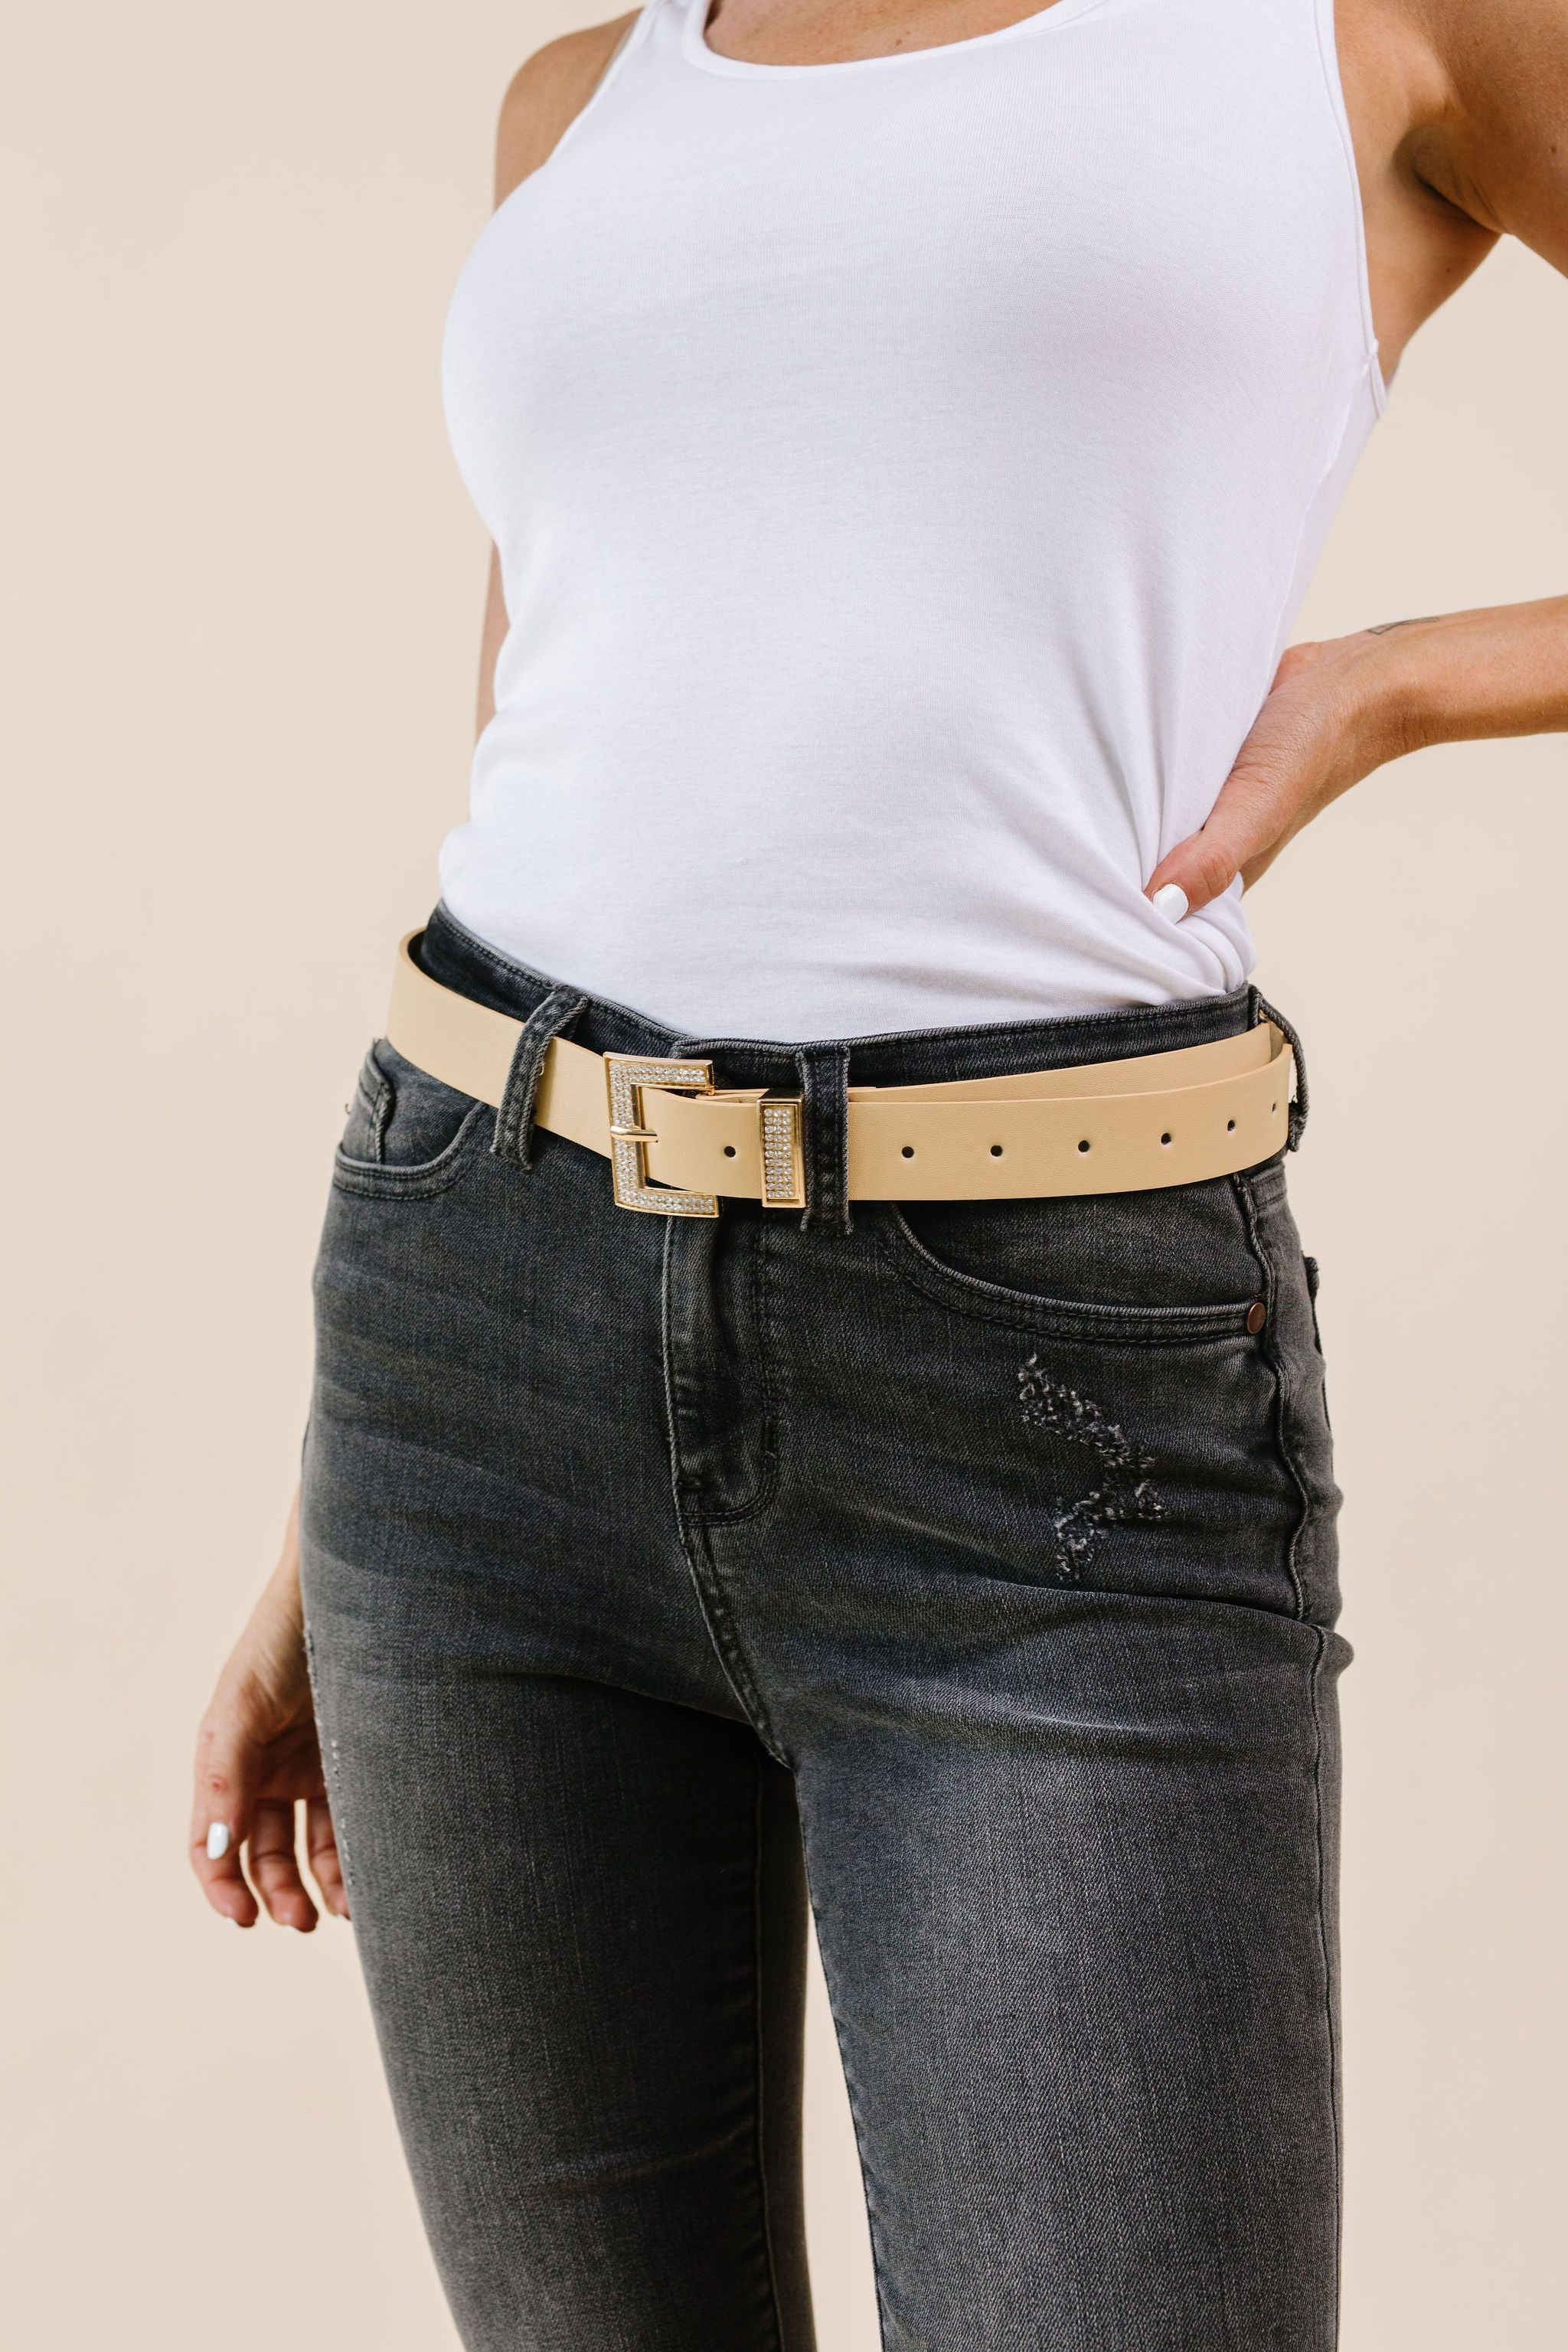 Just A Little Bling Belt In Natural